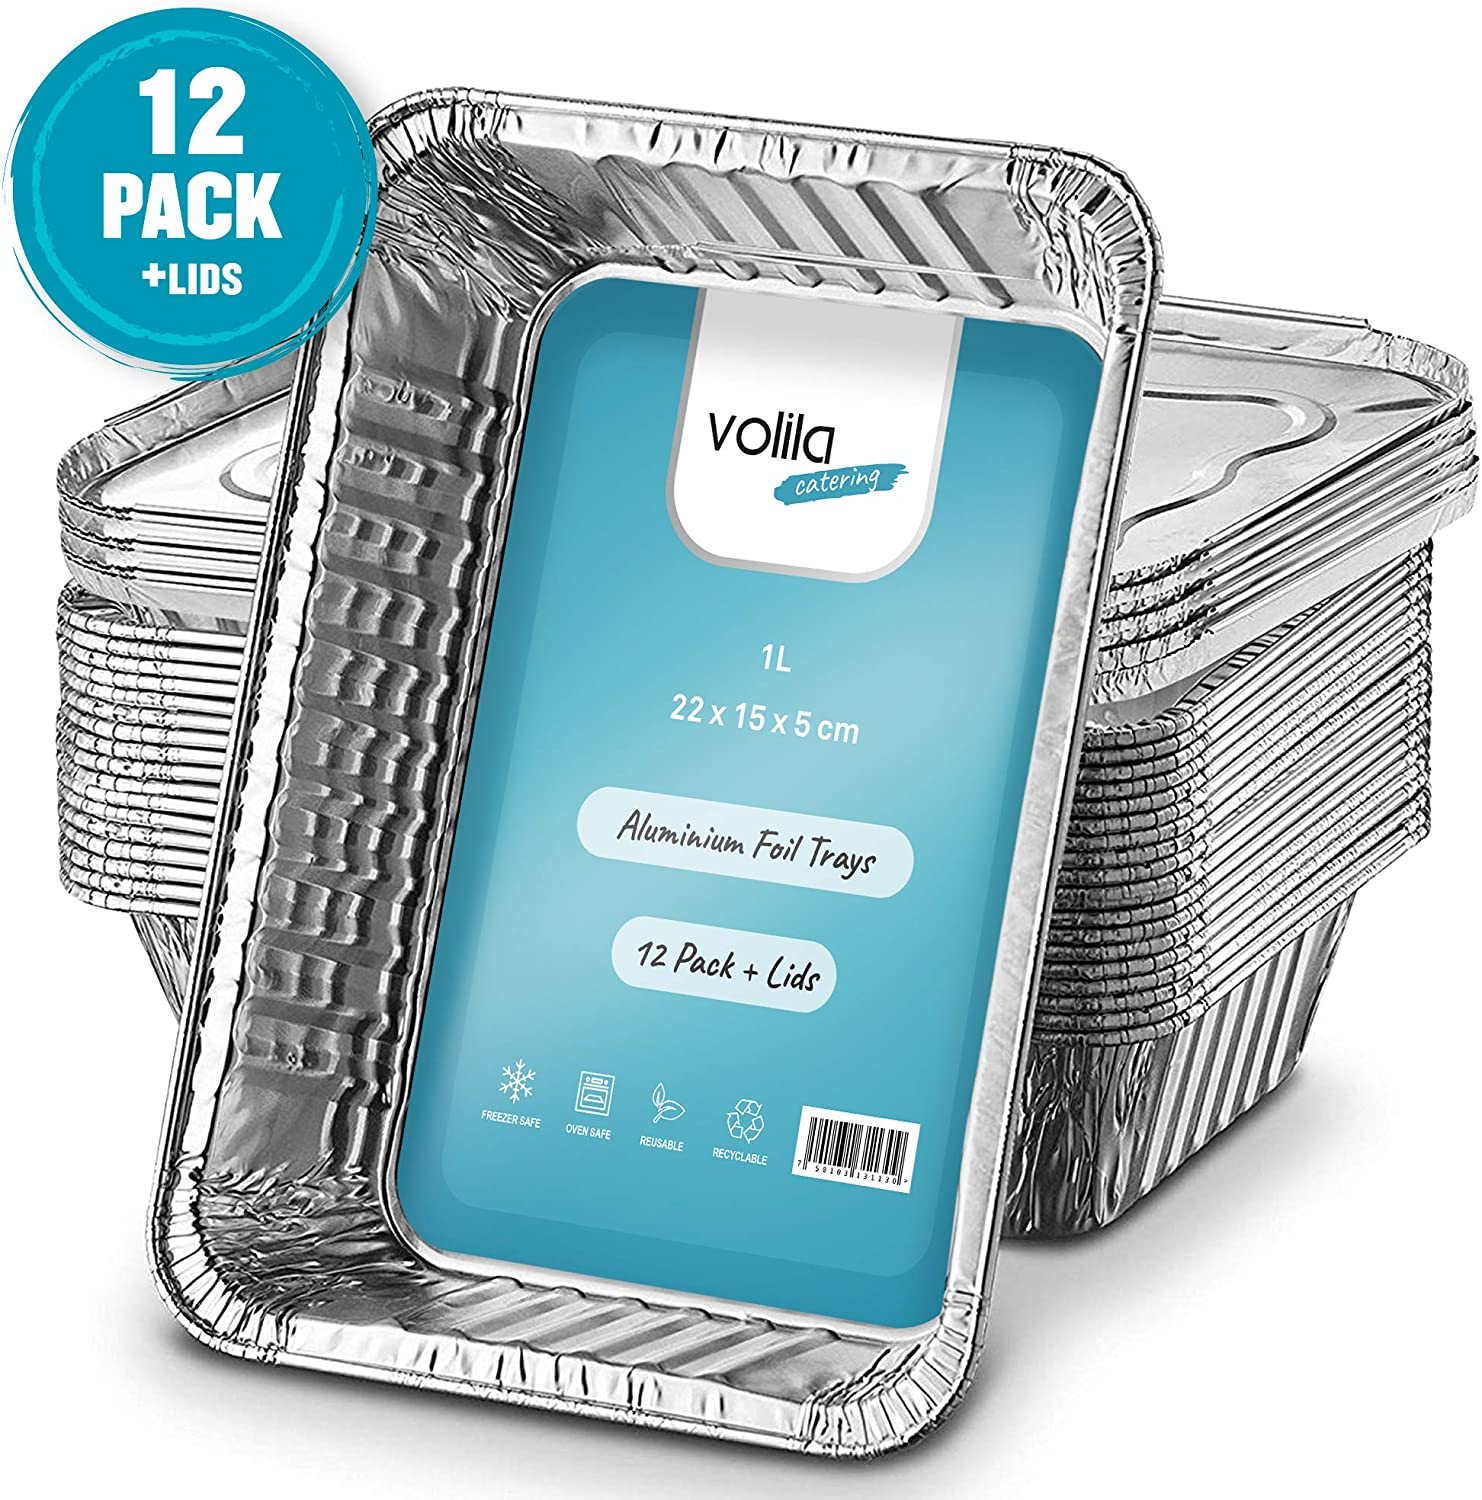 Freezing and Storing Trays with Silver Lids Cooking 12 Pack Disposable Foil Pans Aluminium Foil Takeaway 1L Containers for Baking